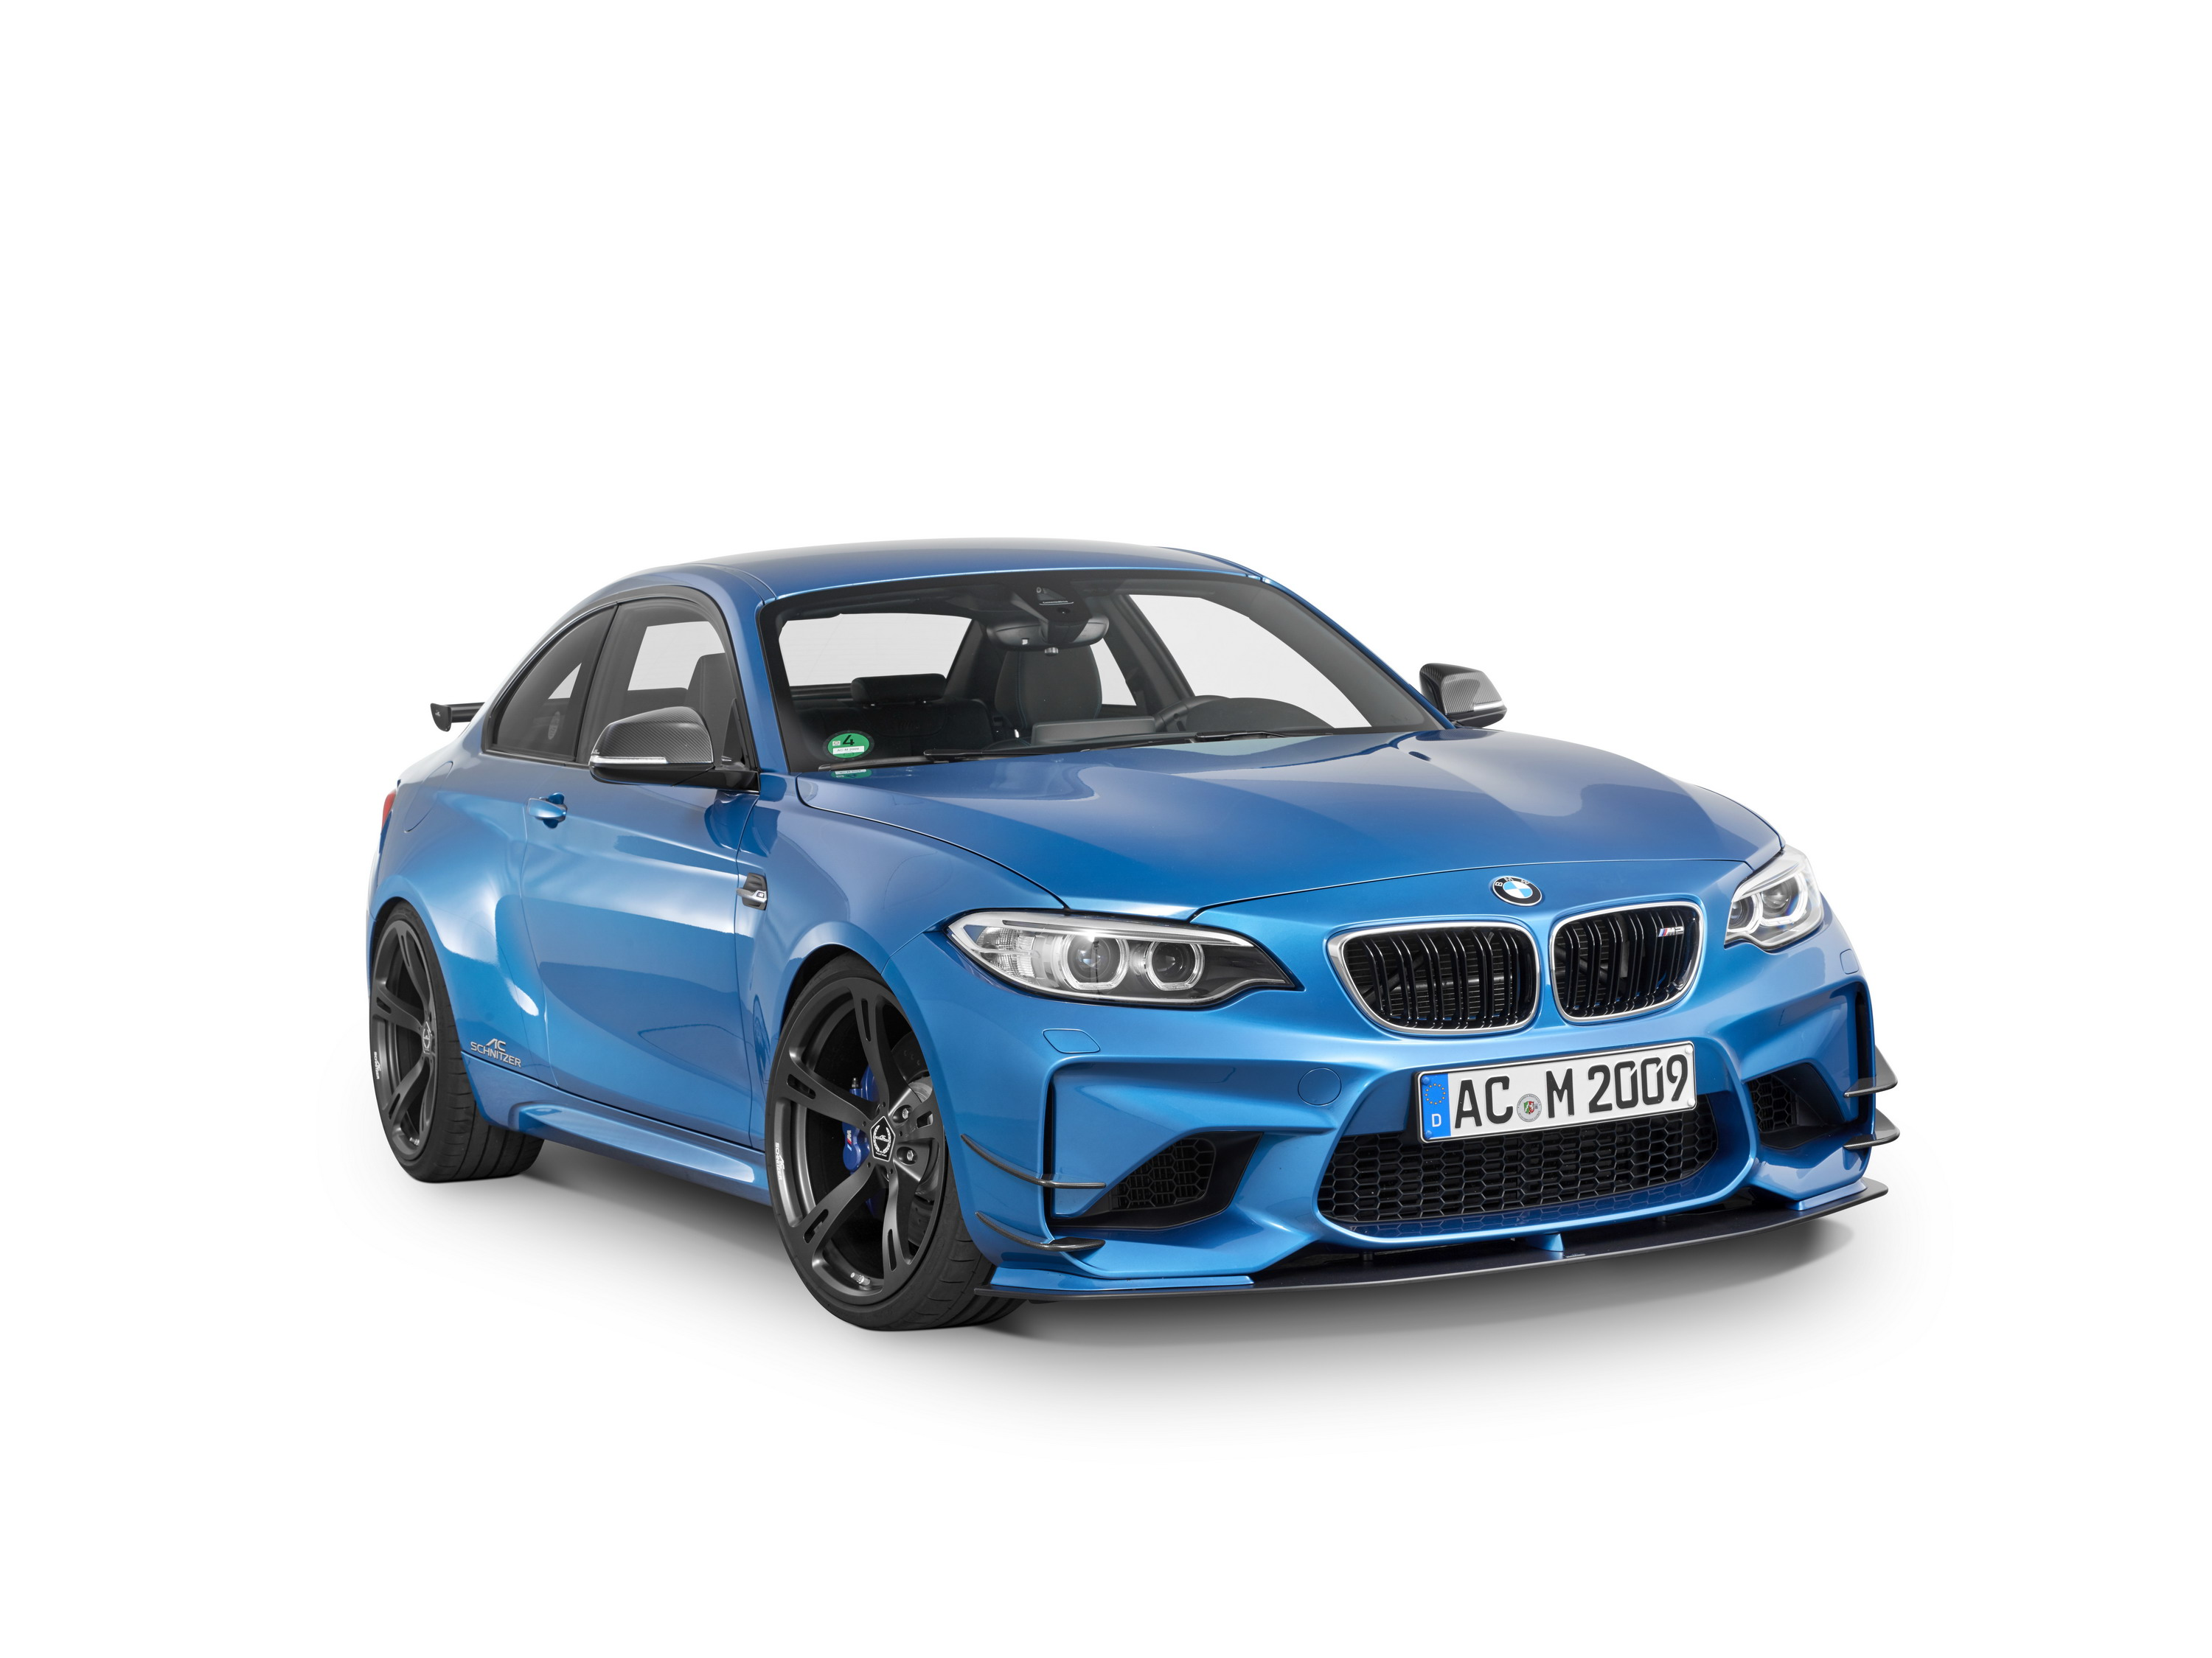 Bmw M2 Top Speed 2016 Bmw M2 By Ac Schnitzer Gallery 693453 Top Speed